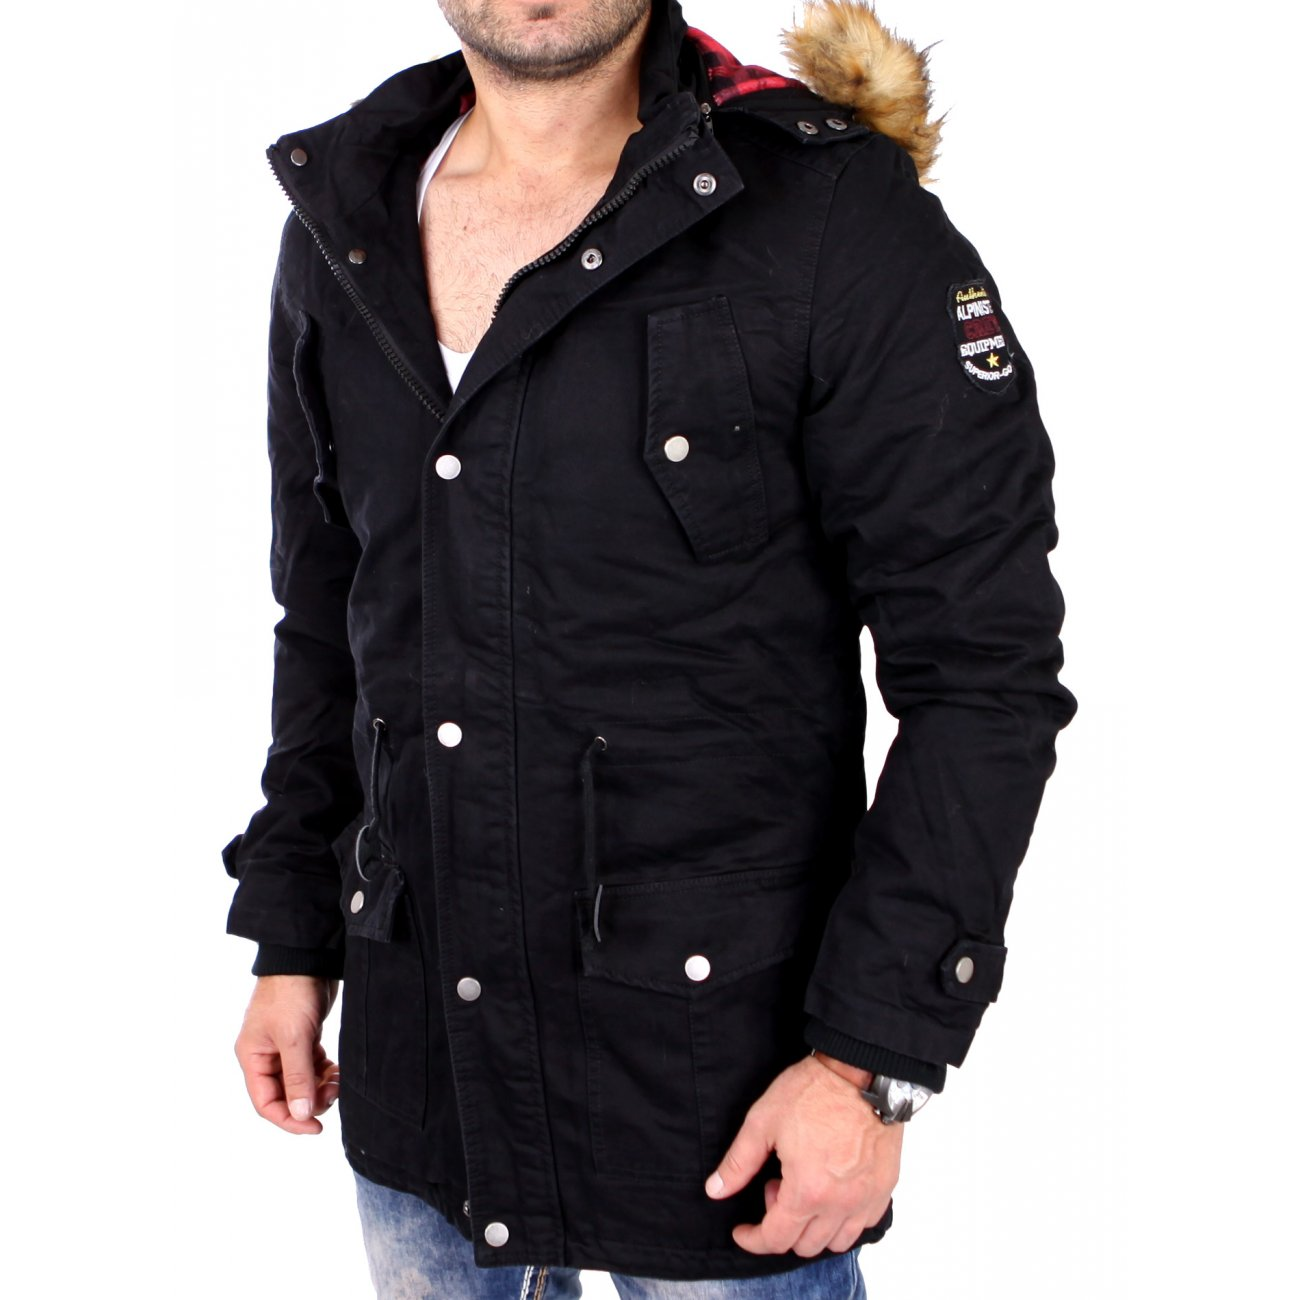 herren parka mit fell reslad winterjacke herren parka. Black Bedroom Furniture Sets. Home Design Ideas